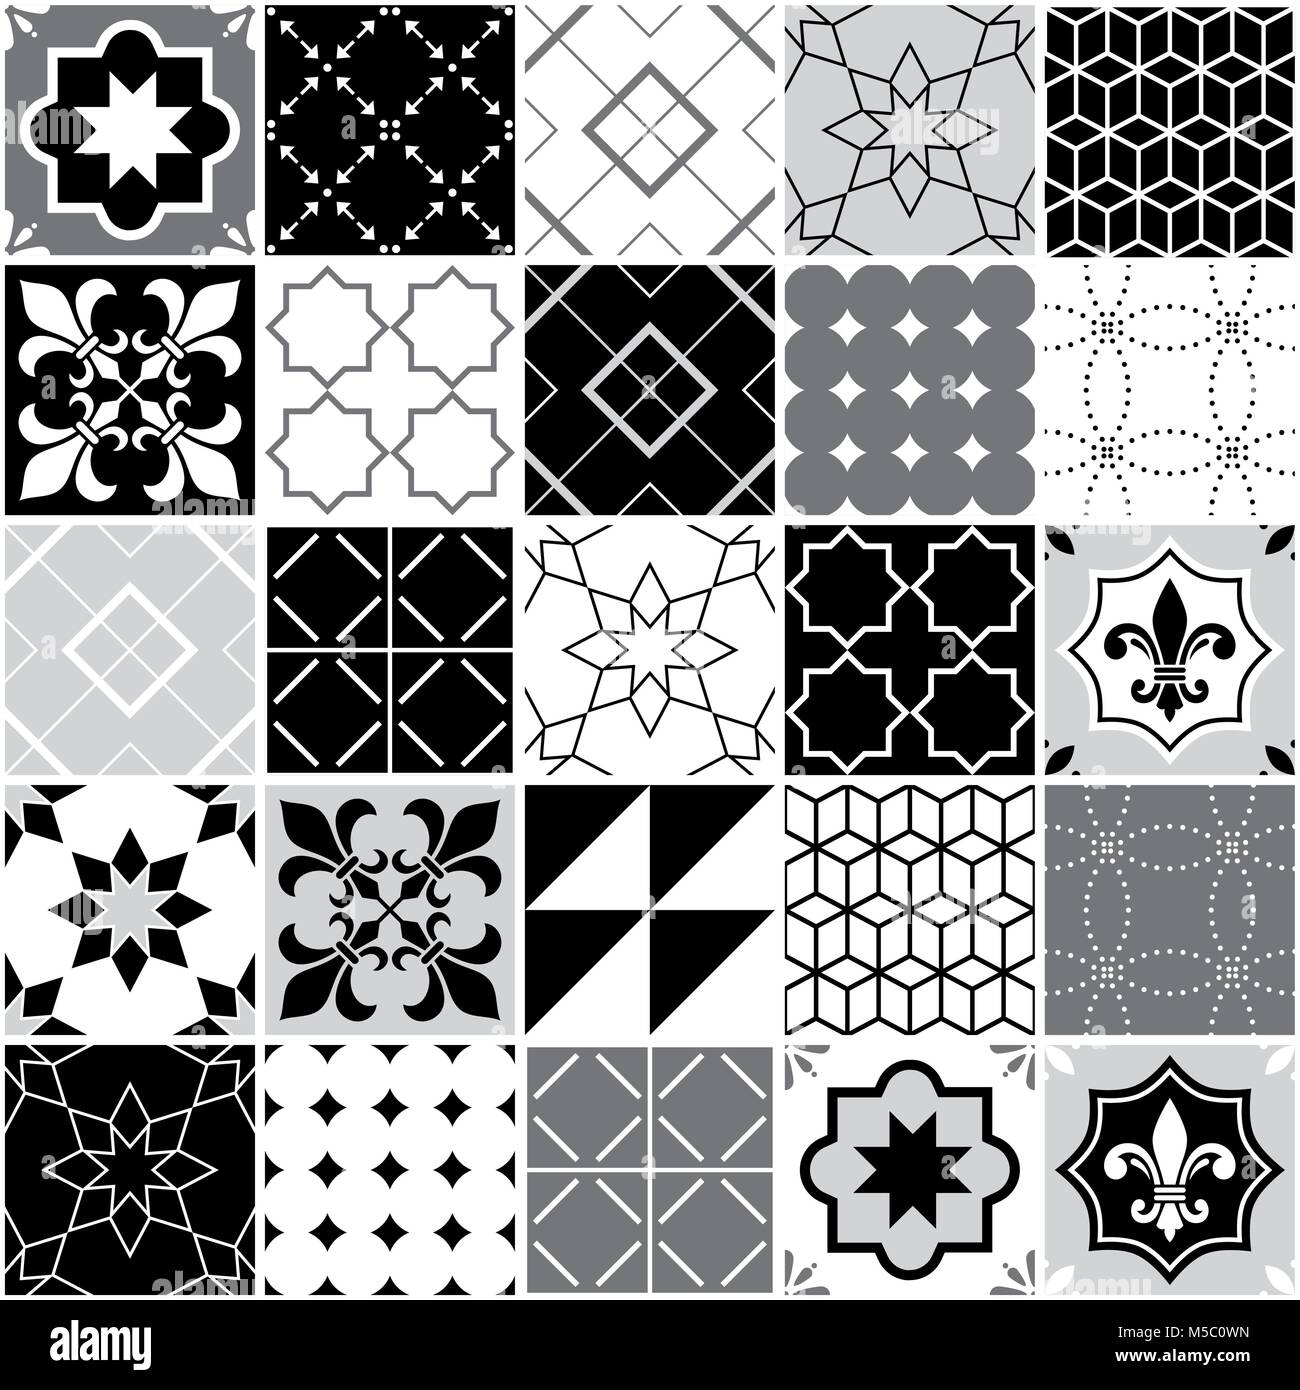 Portuguese tiles Azulejos, seamless vector tile pattern, geometric and floral design - black, white and grey patchwork - Stock Vector